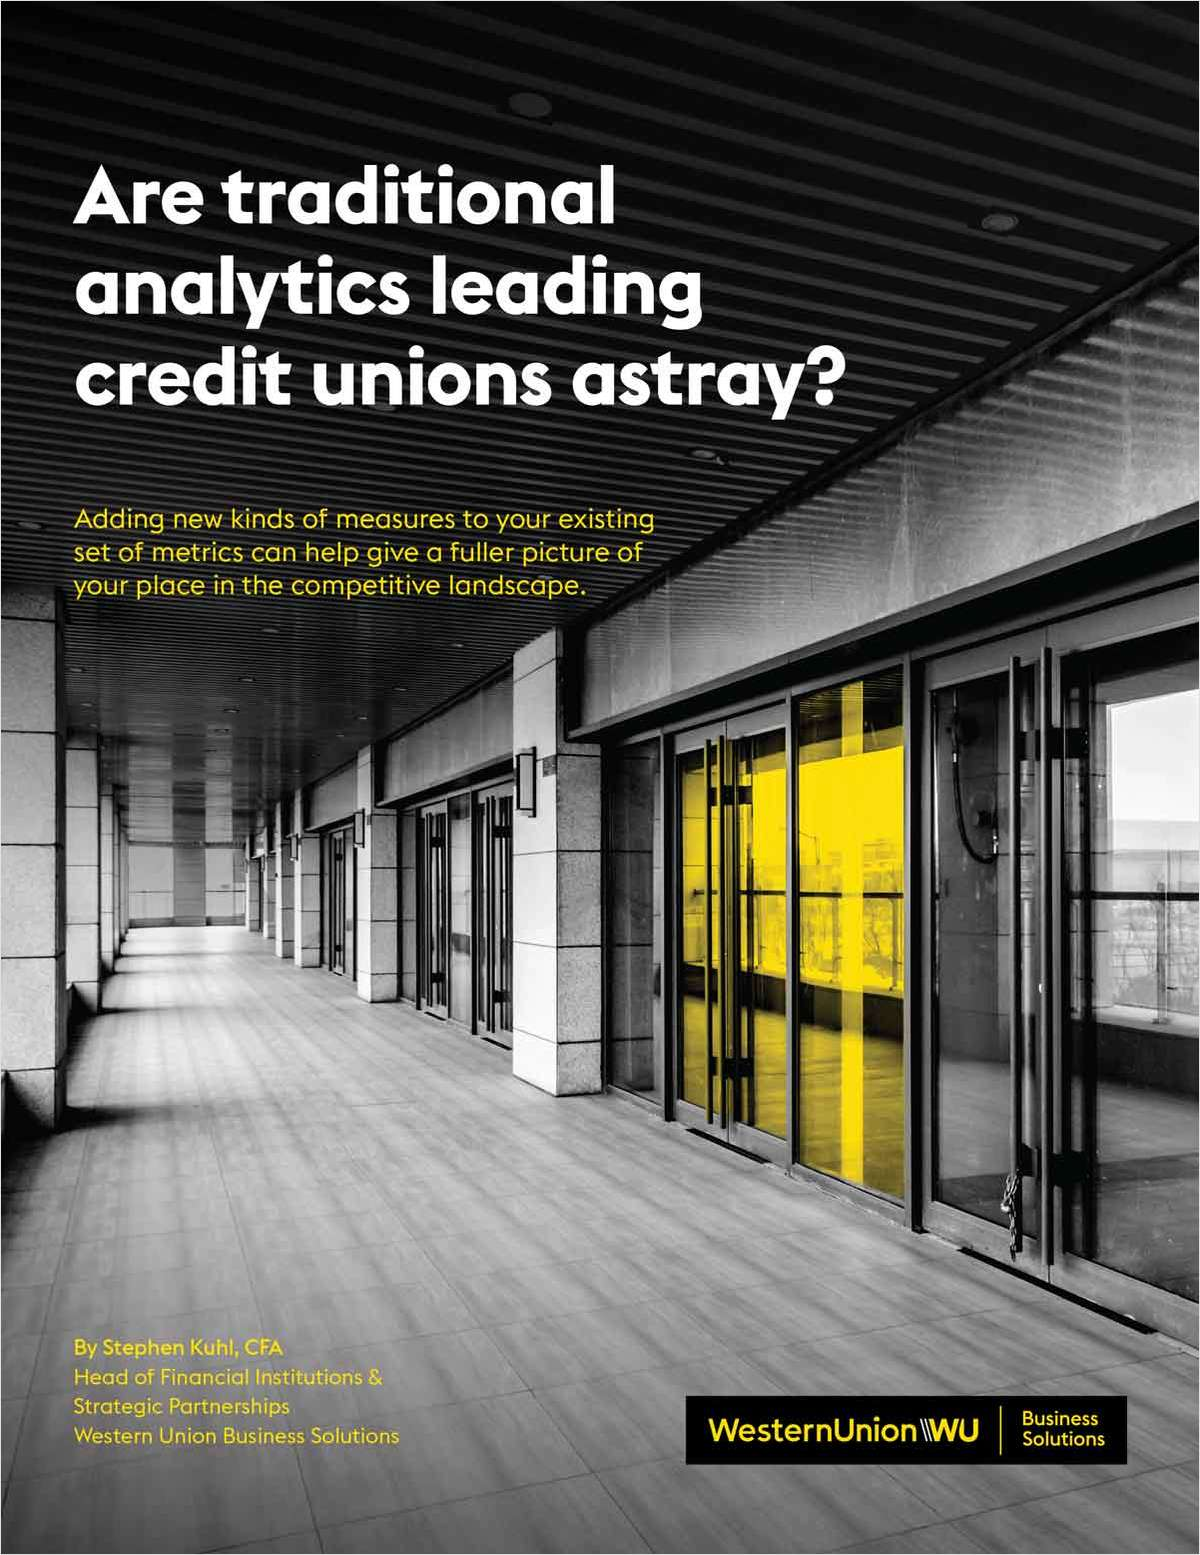 How to Use The Right Analytics to Help Measure Your CU's Performance